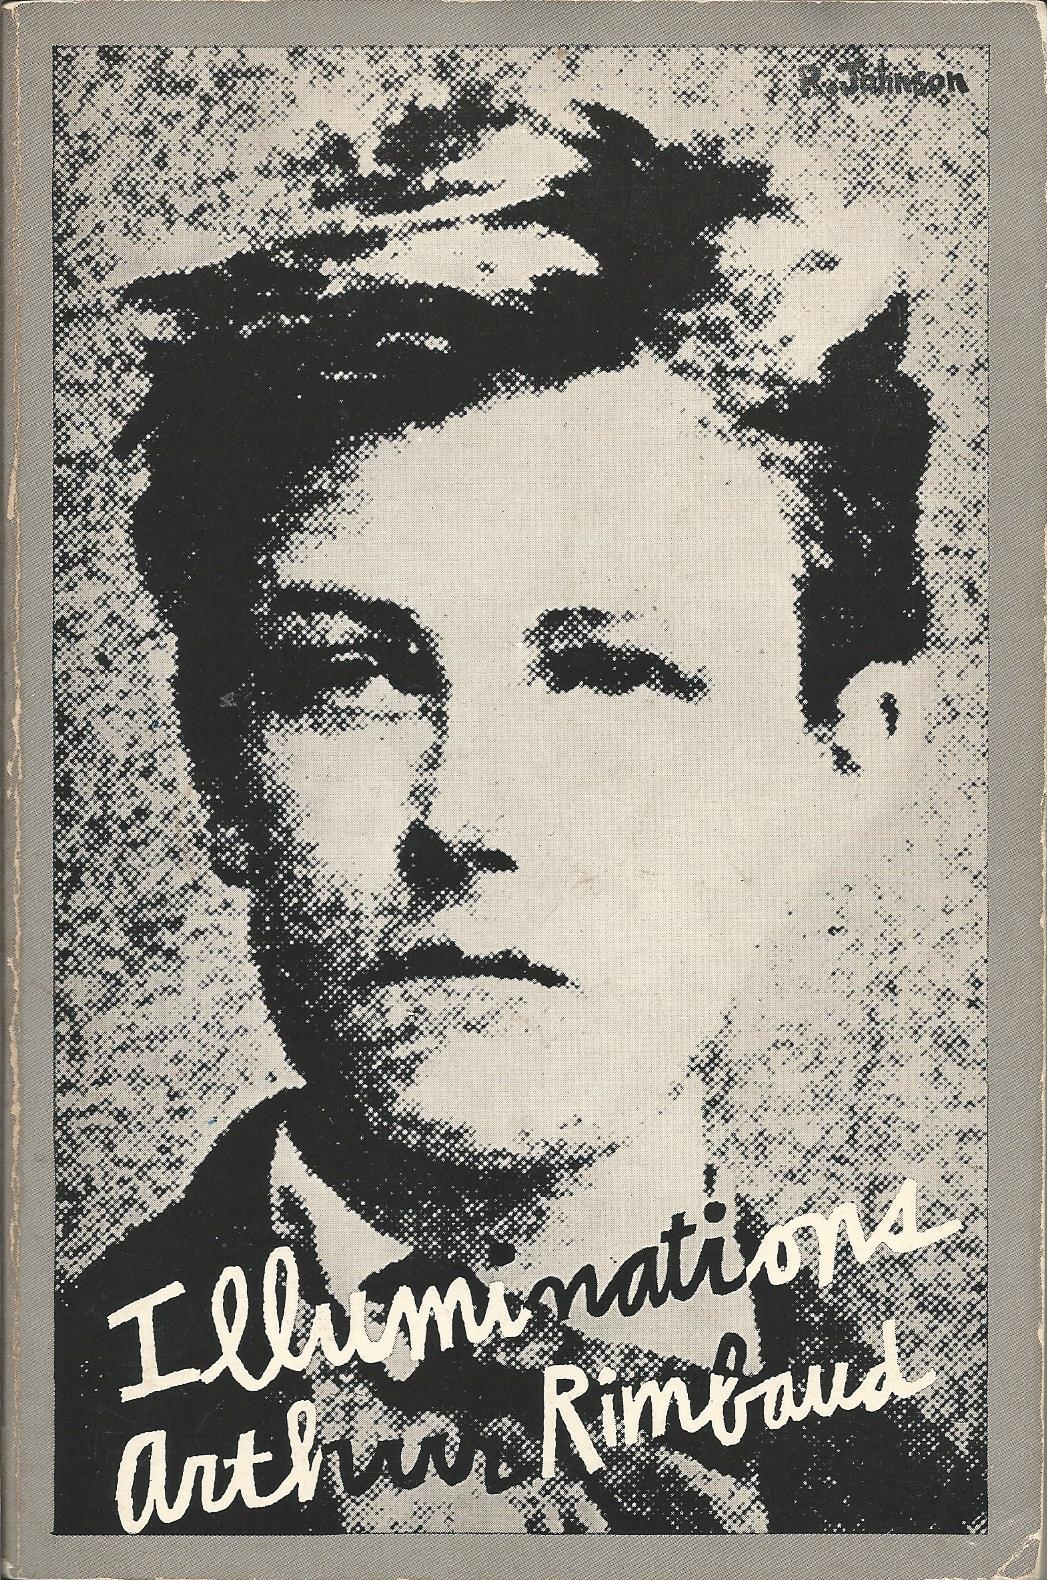 Fig. 16 Ray Johnson, Illuminations: Arthur Rimbaud, 1957. © Ray Johnson Estate, Courtesy Richard L. Feigen & Co.